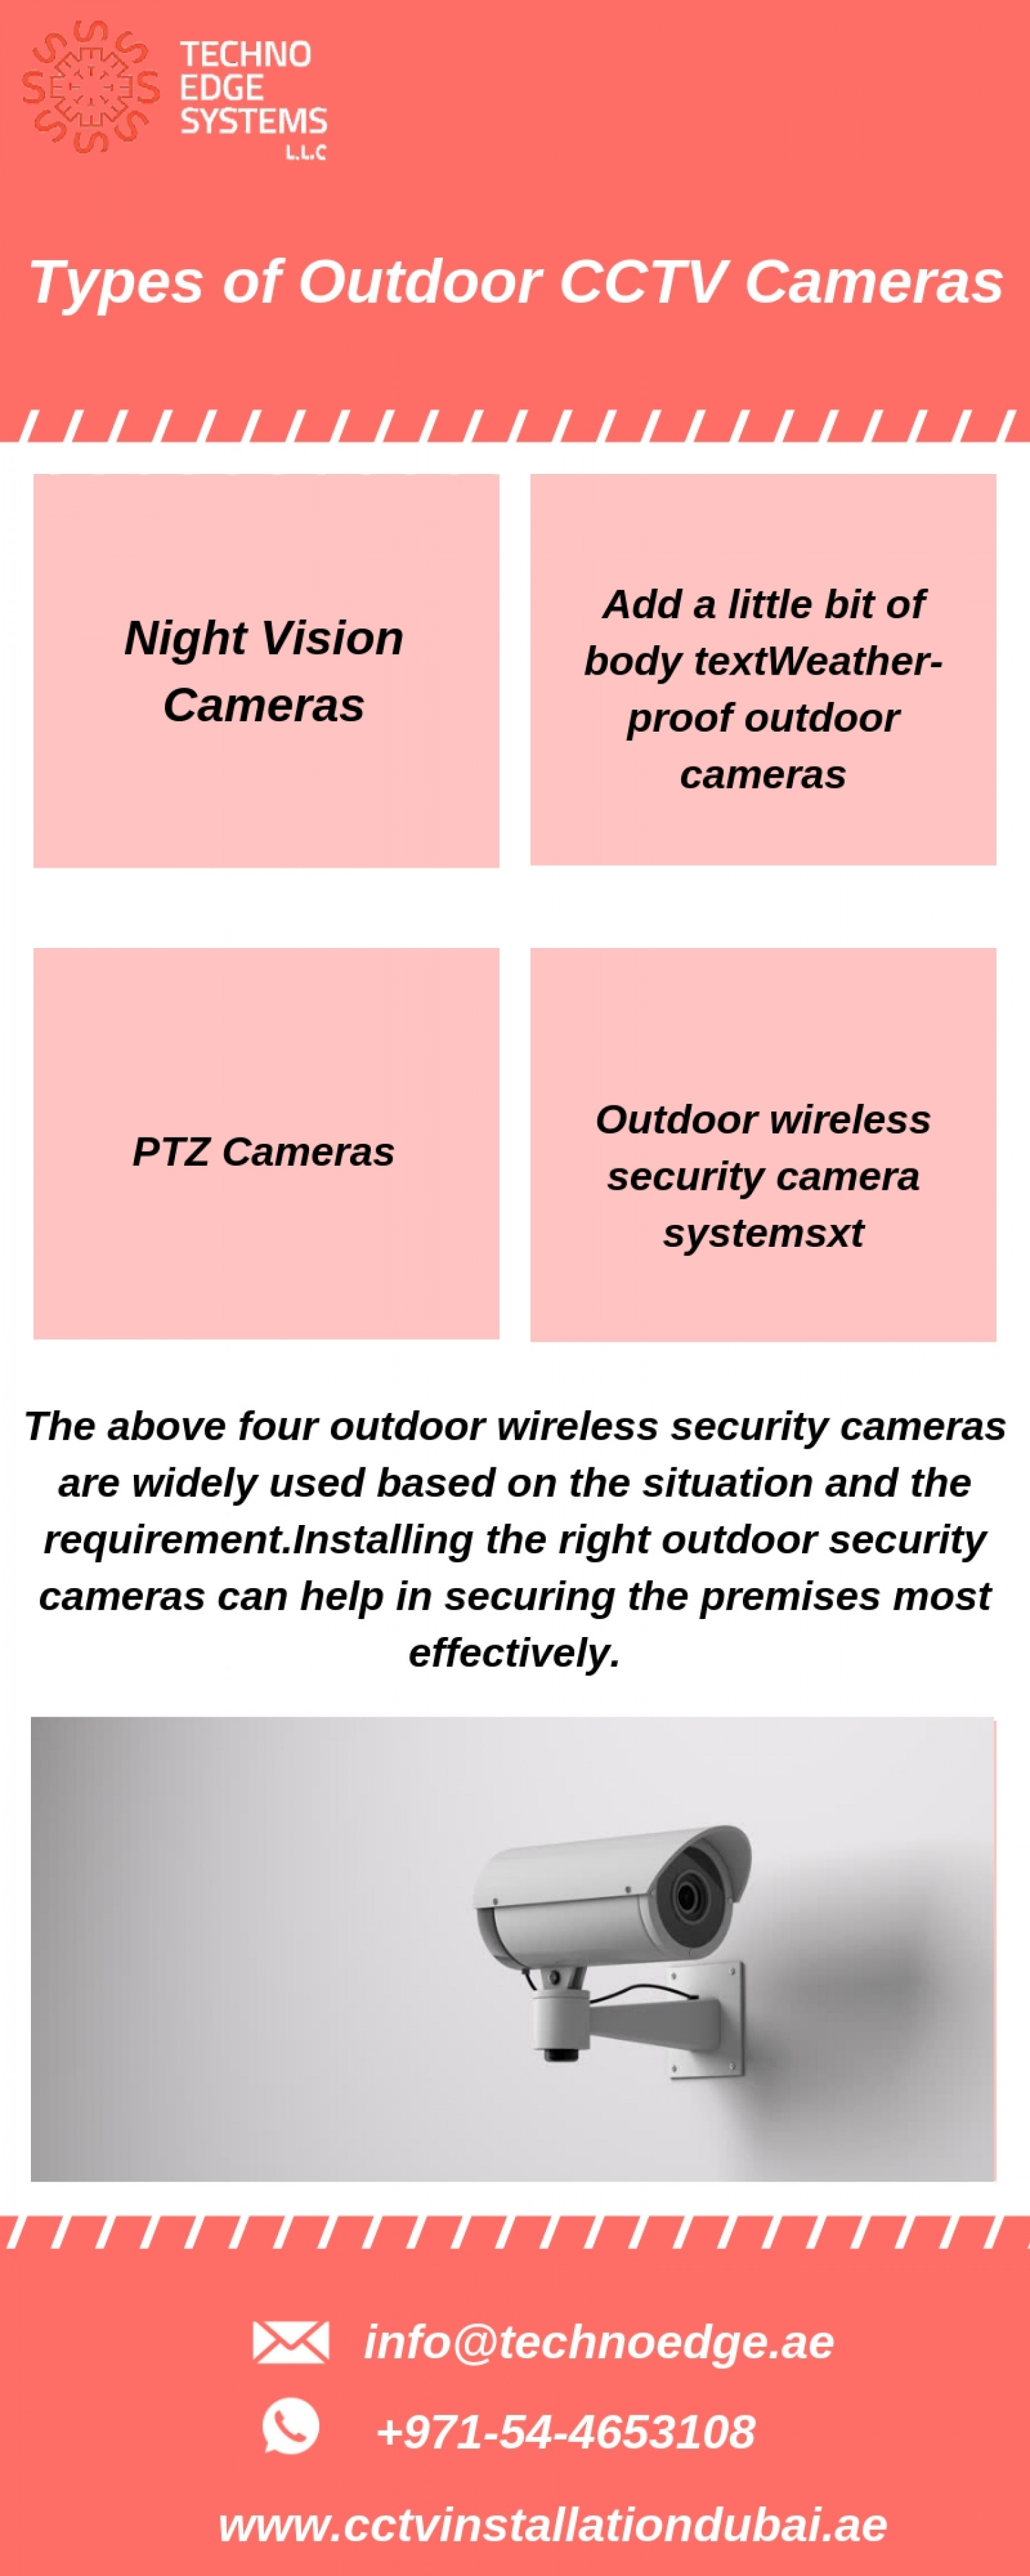 Types of Outdoor Wireless Security Cameras Infographic